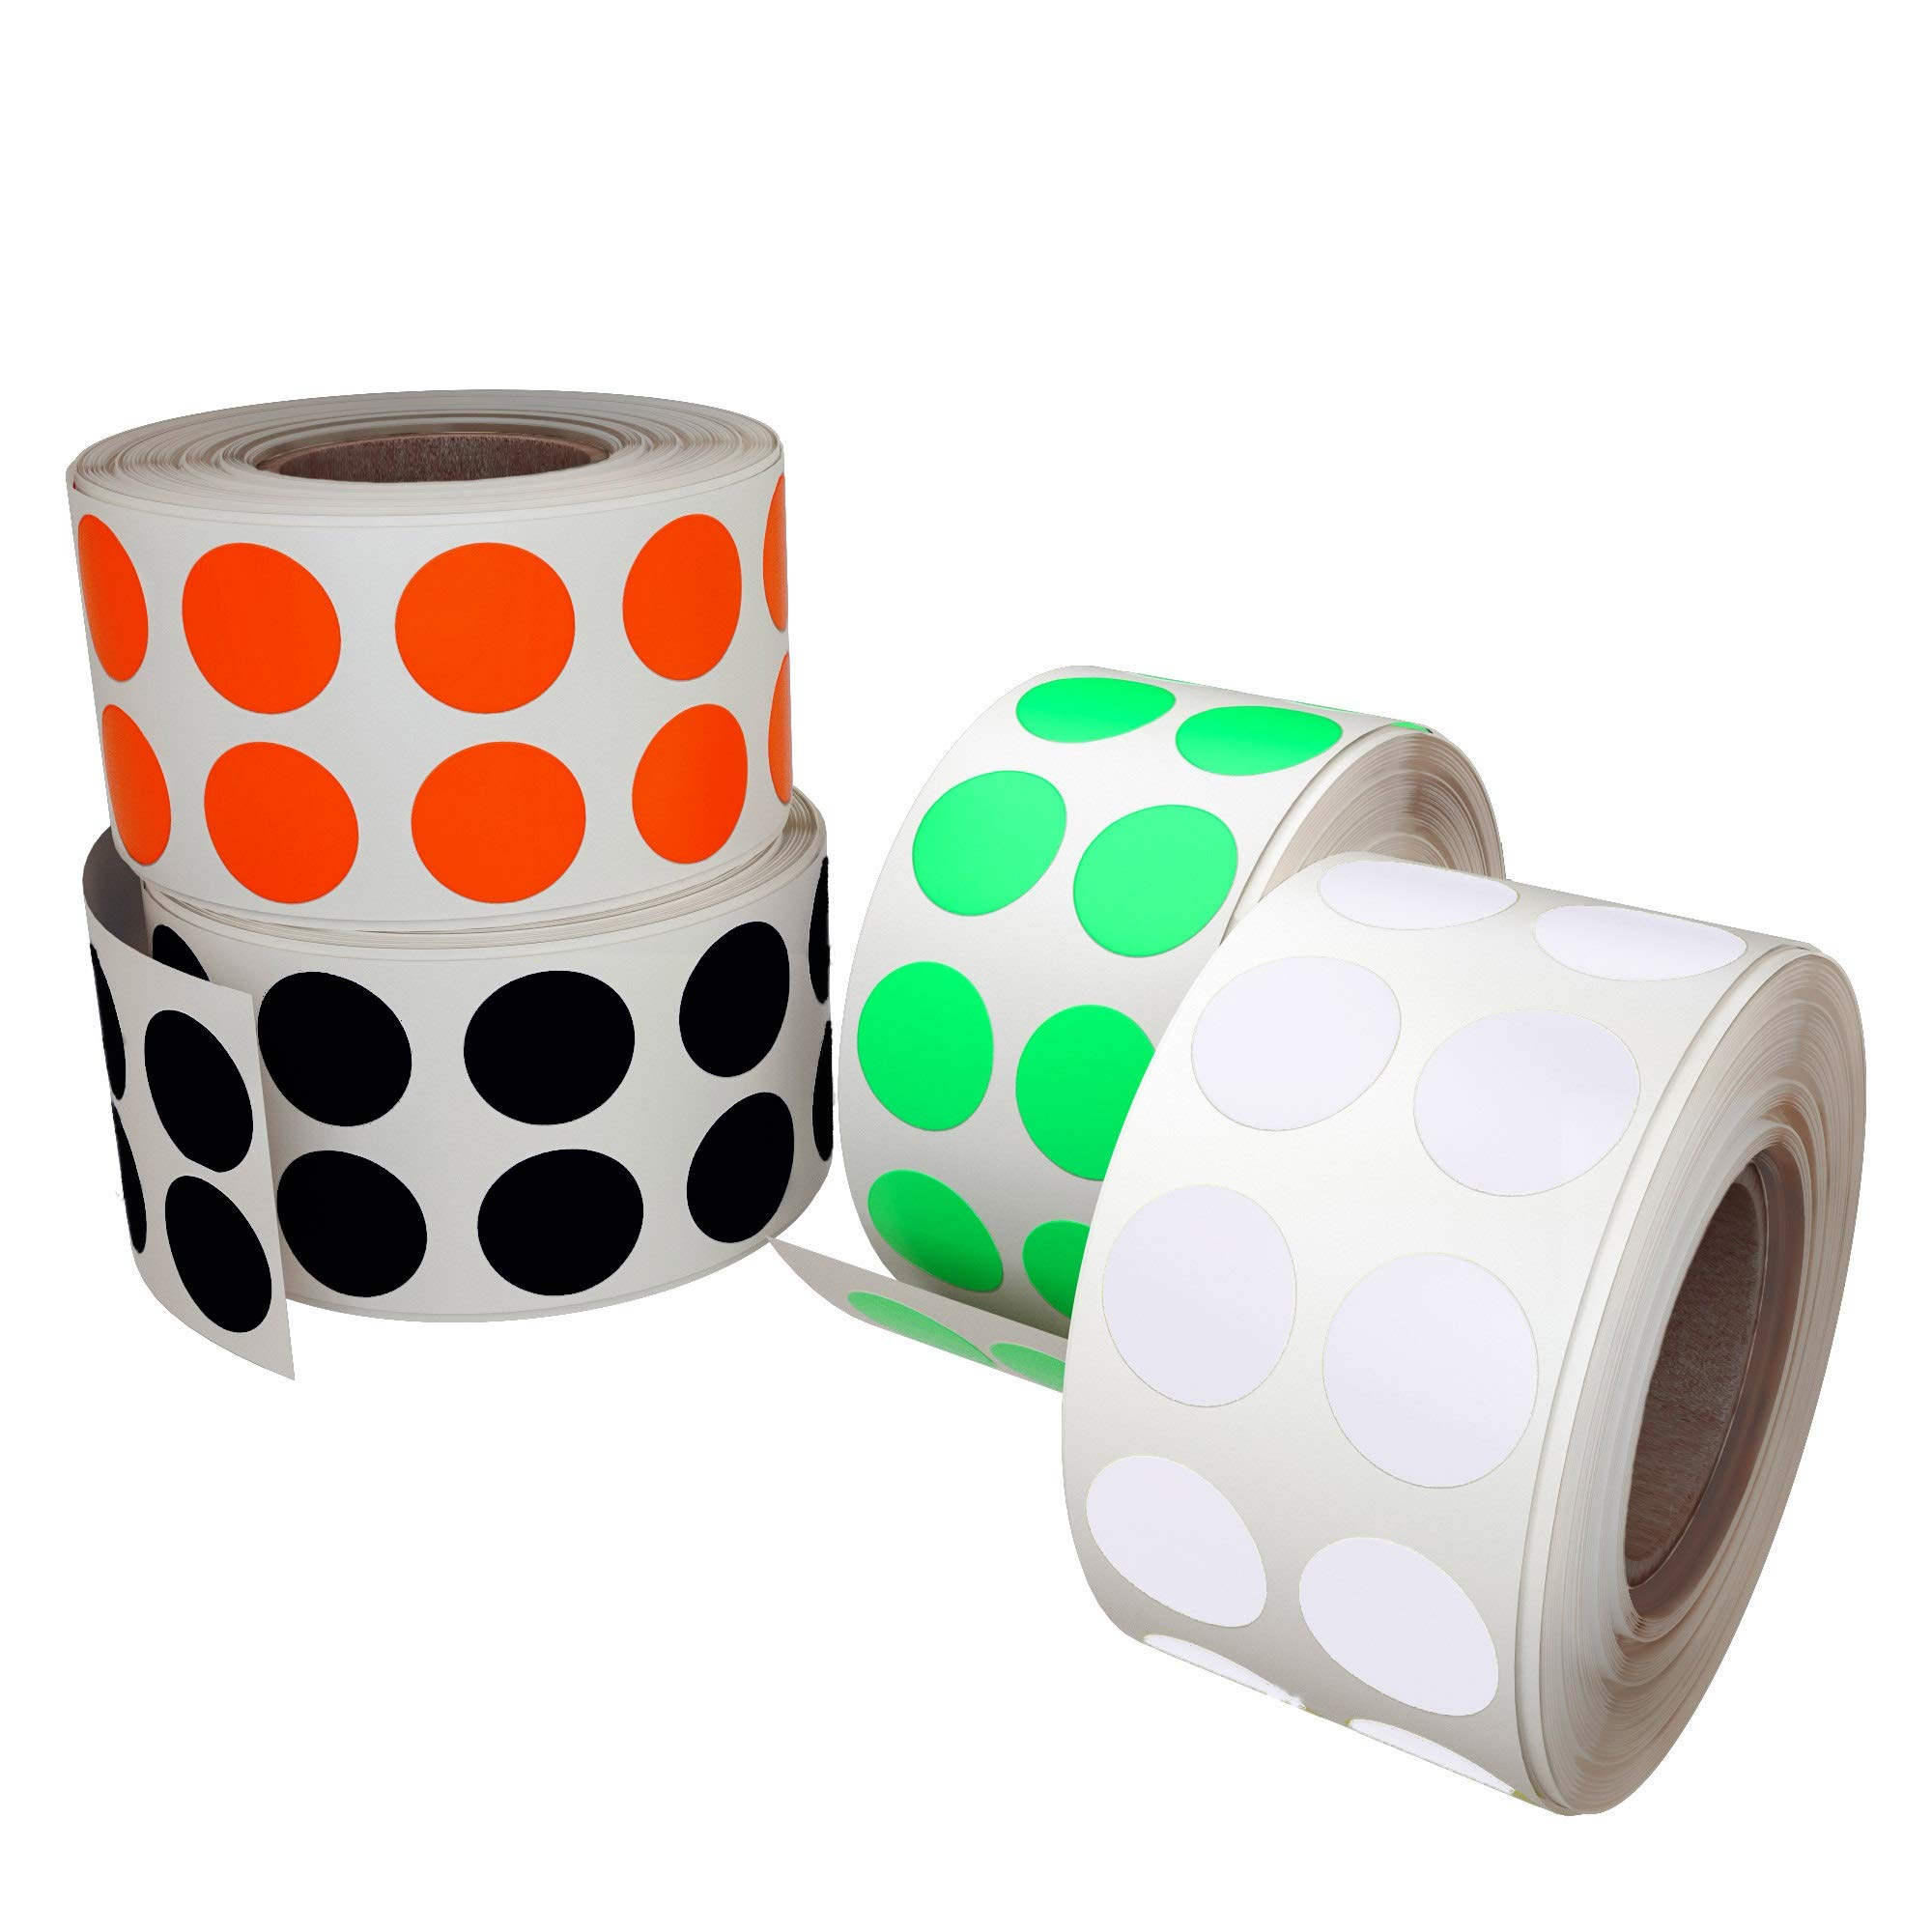 Color Coding Labels Neon Red, Black, White and Neon Green - 4 Colors - Round dot Stickers - 4320 Pack by Royal Green